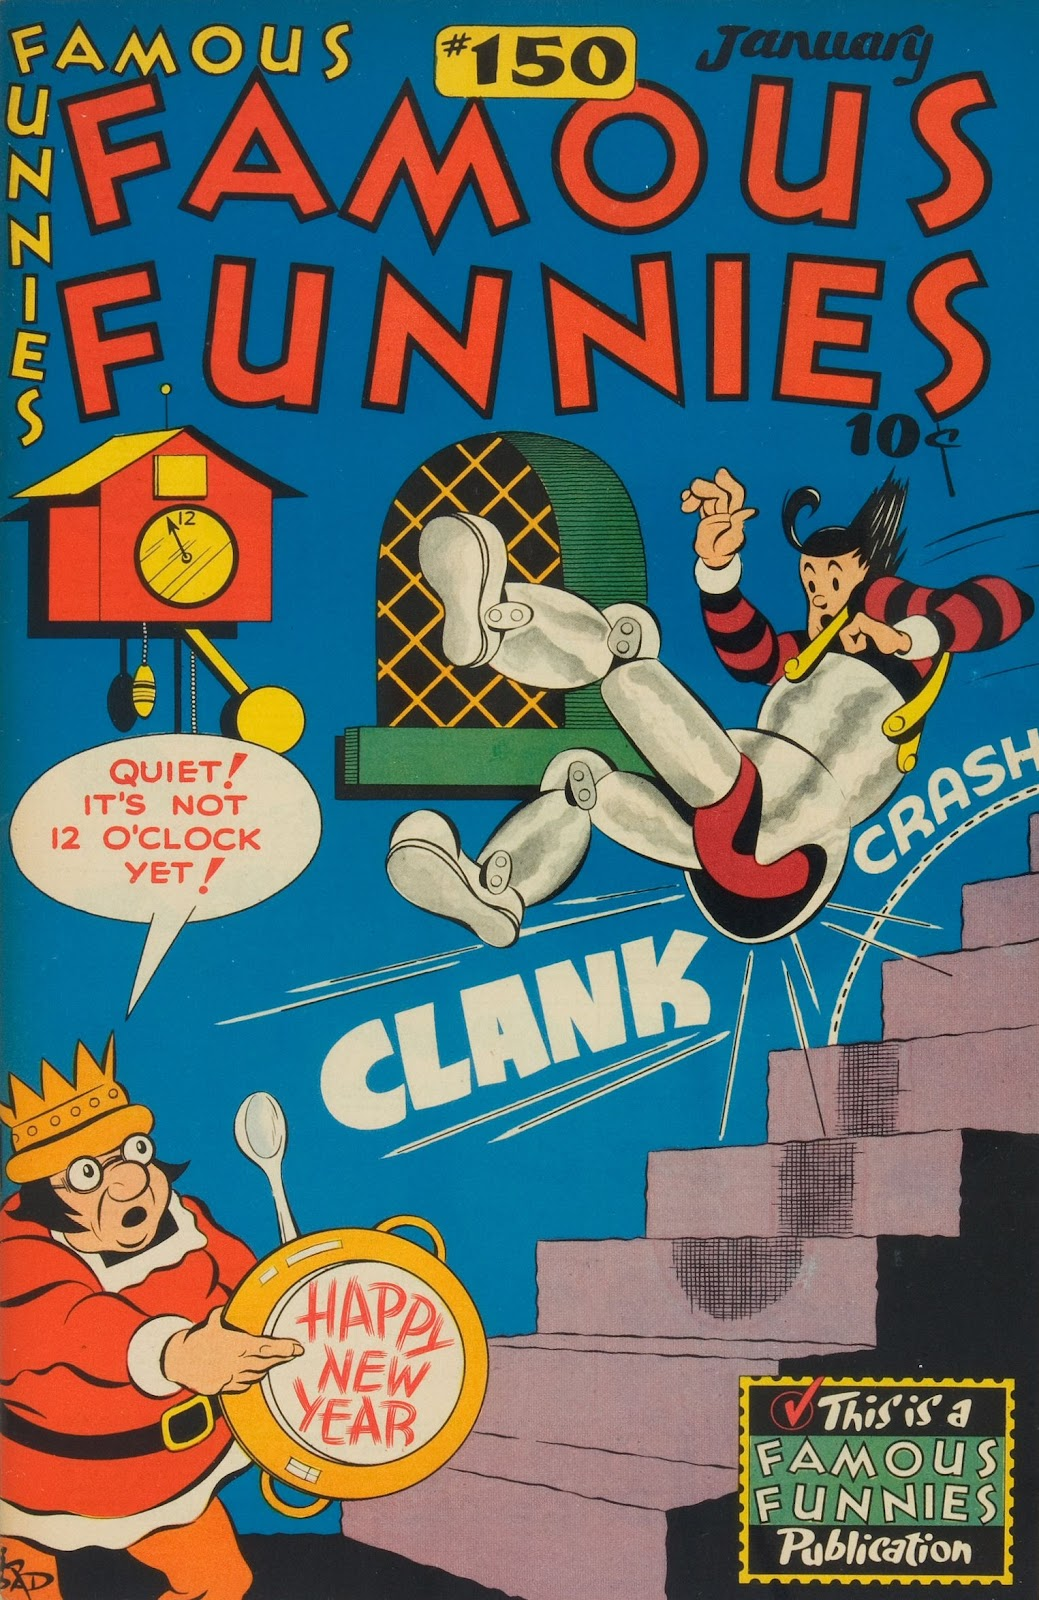 Read online Famous Funnies comic -  Issue #150 - 1